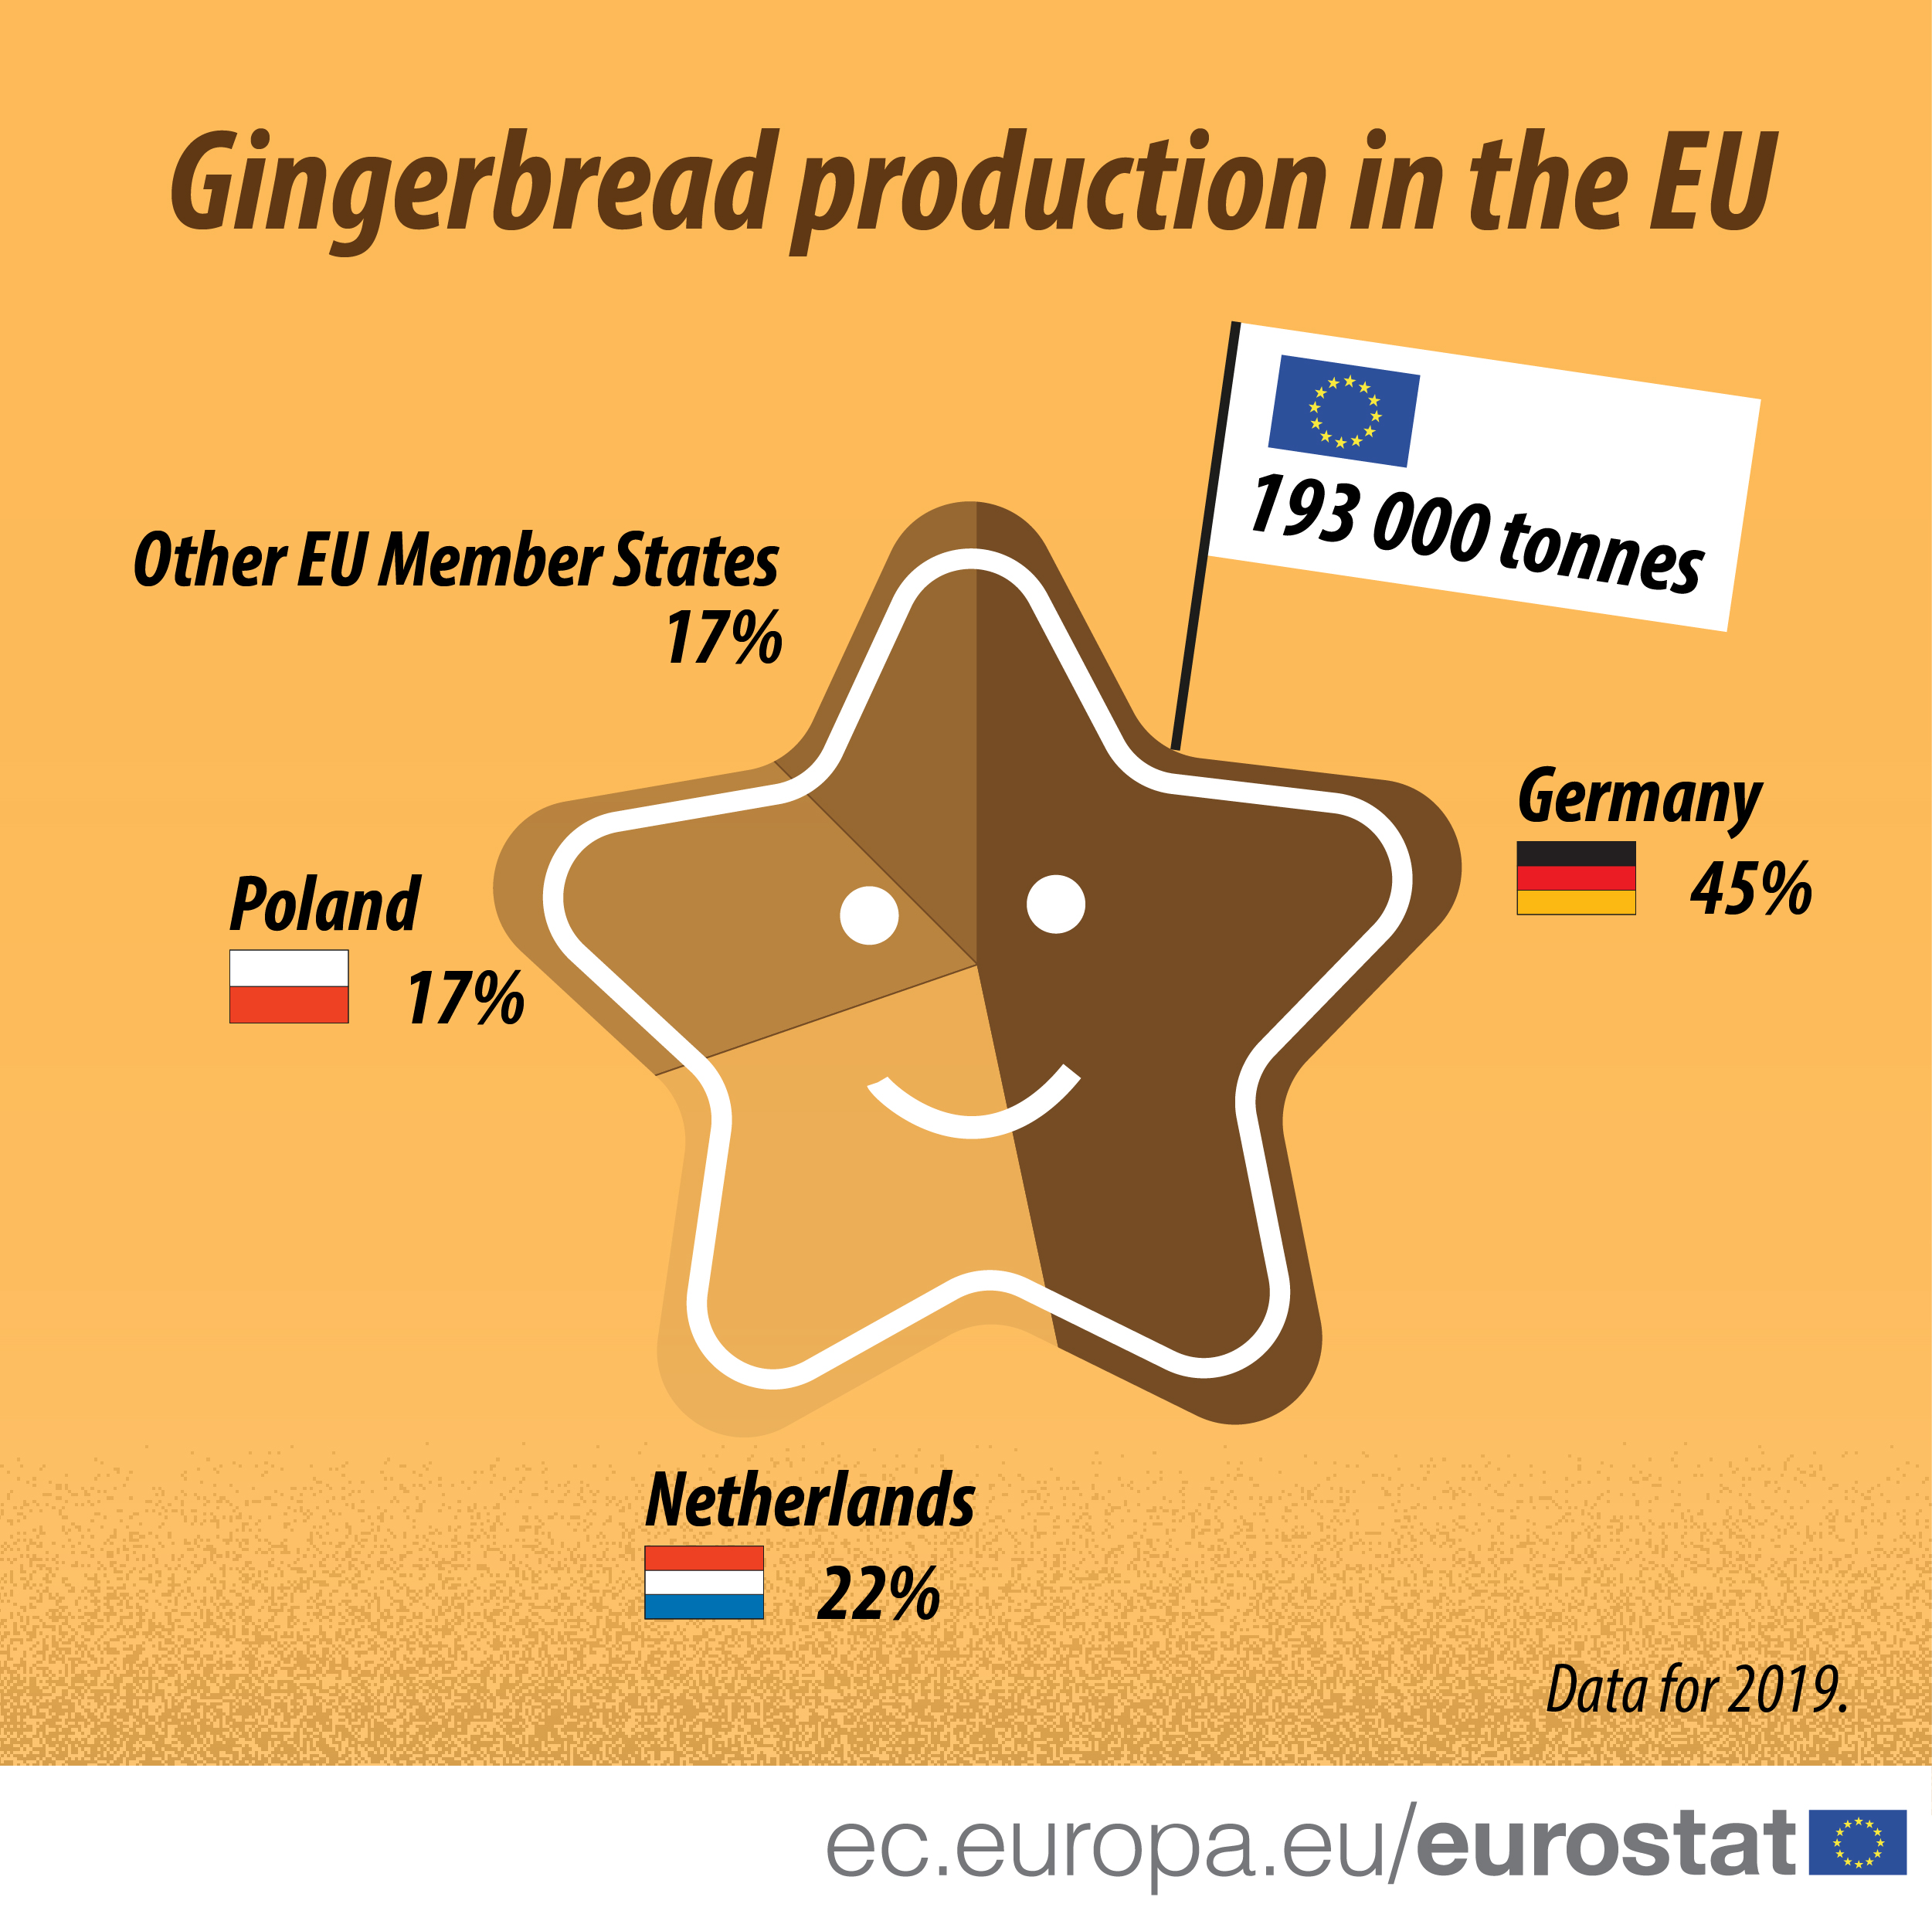 Gingerbread production in the EU, 2019